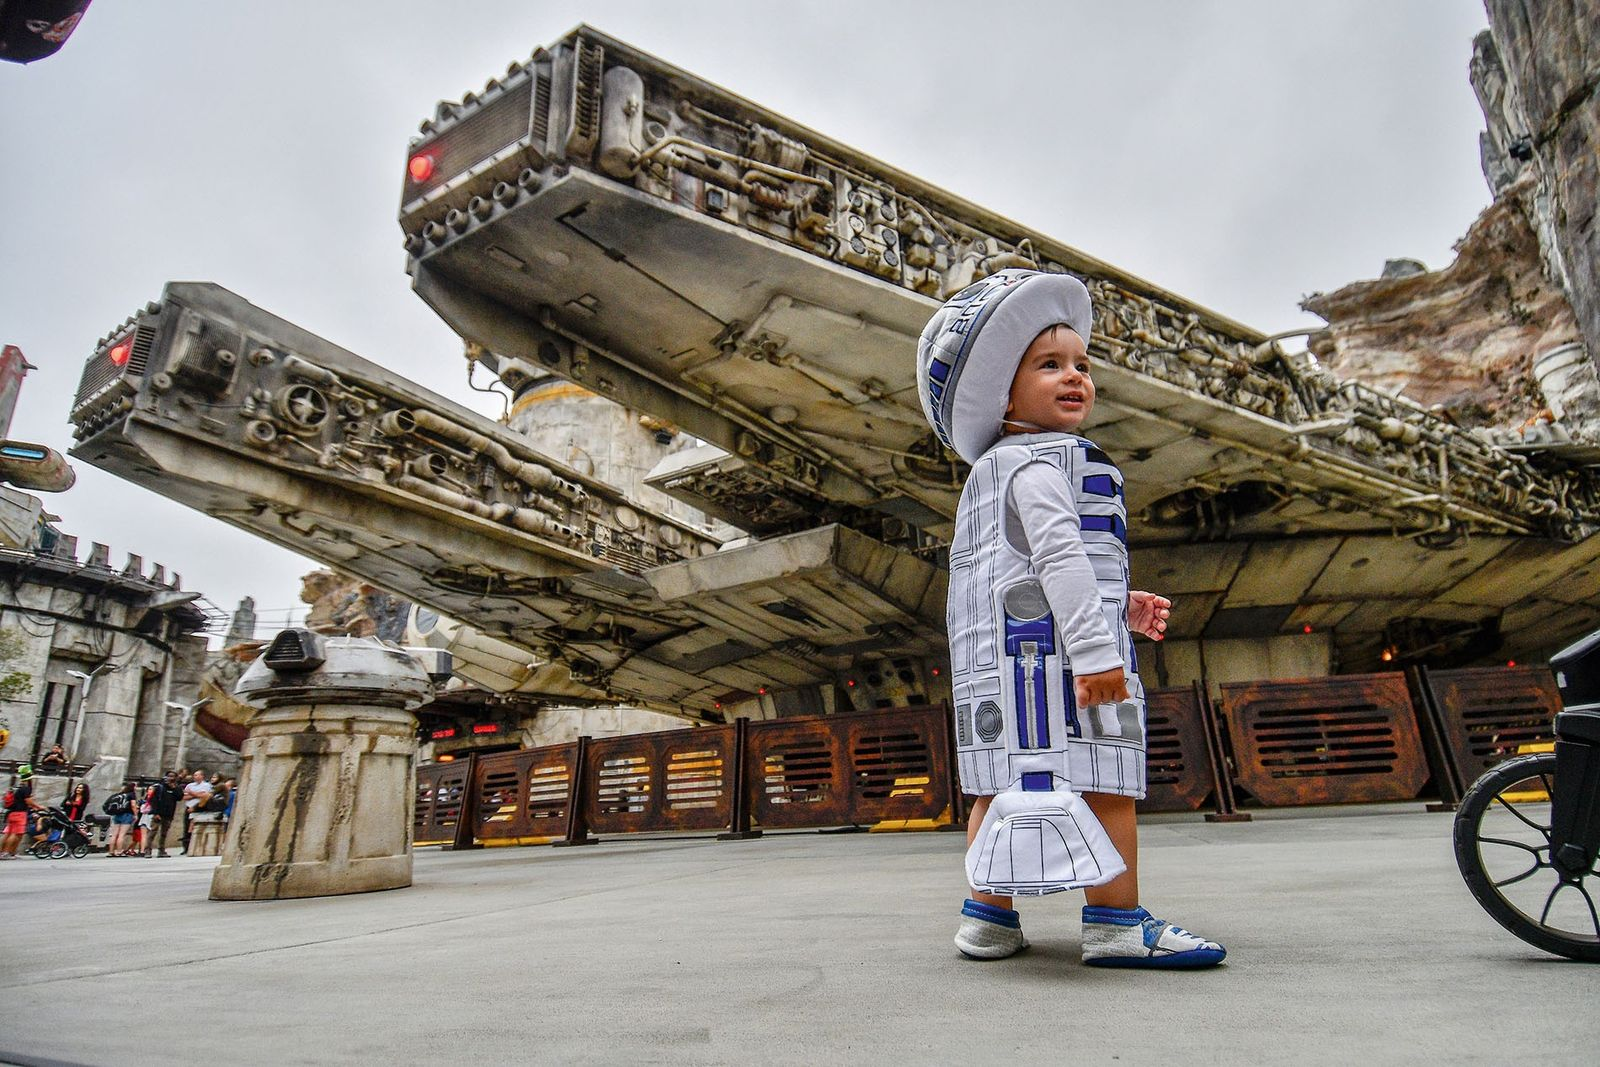 A young fan in a R2D2 costume stands outside a replica of the Millennium Falcon.